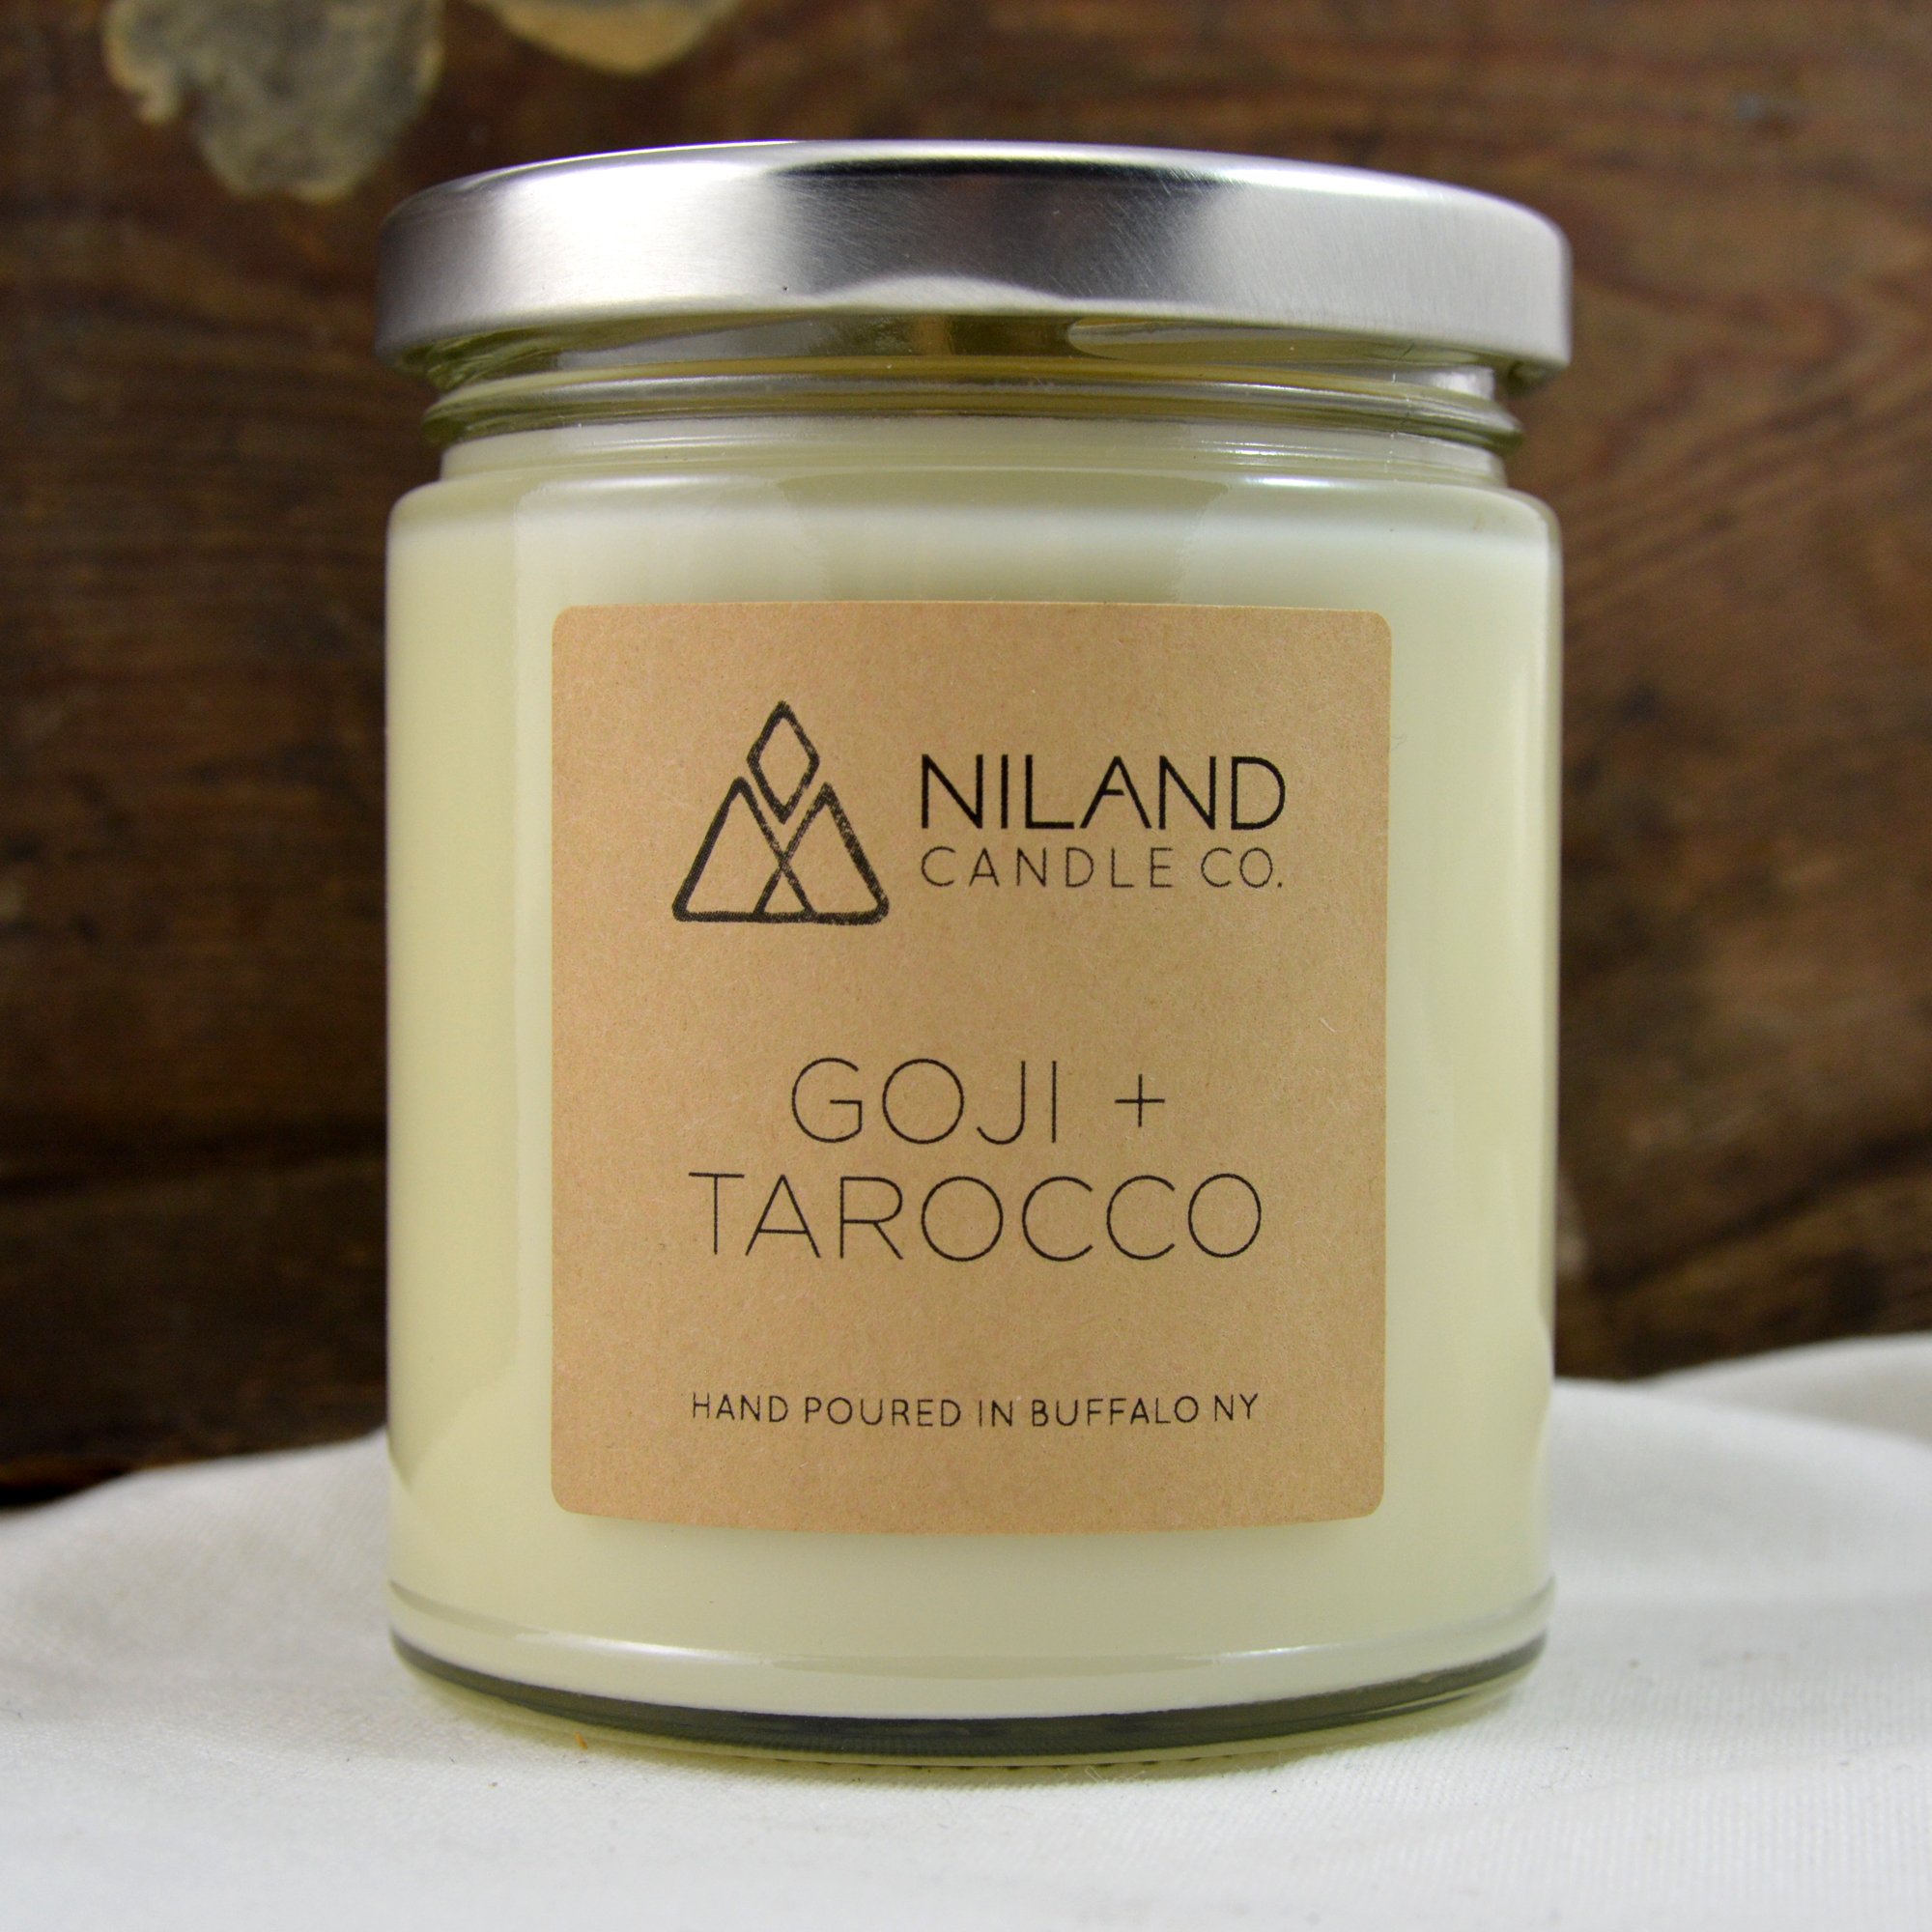 goji tarocco soy candle made in buffalo ny gift shop